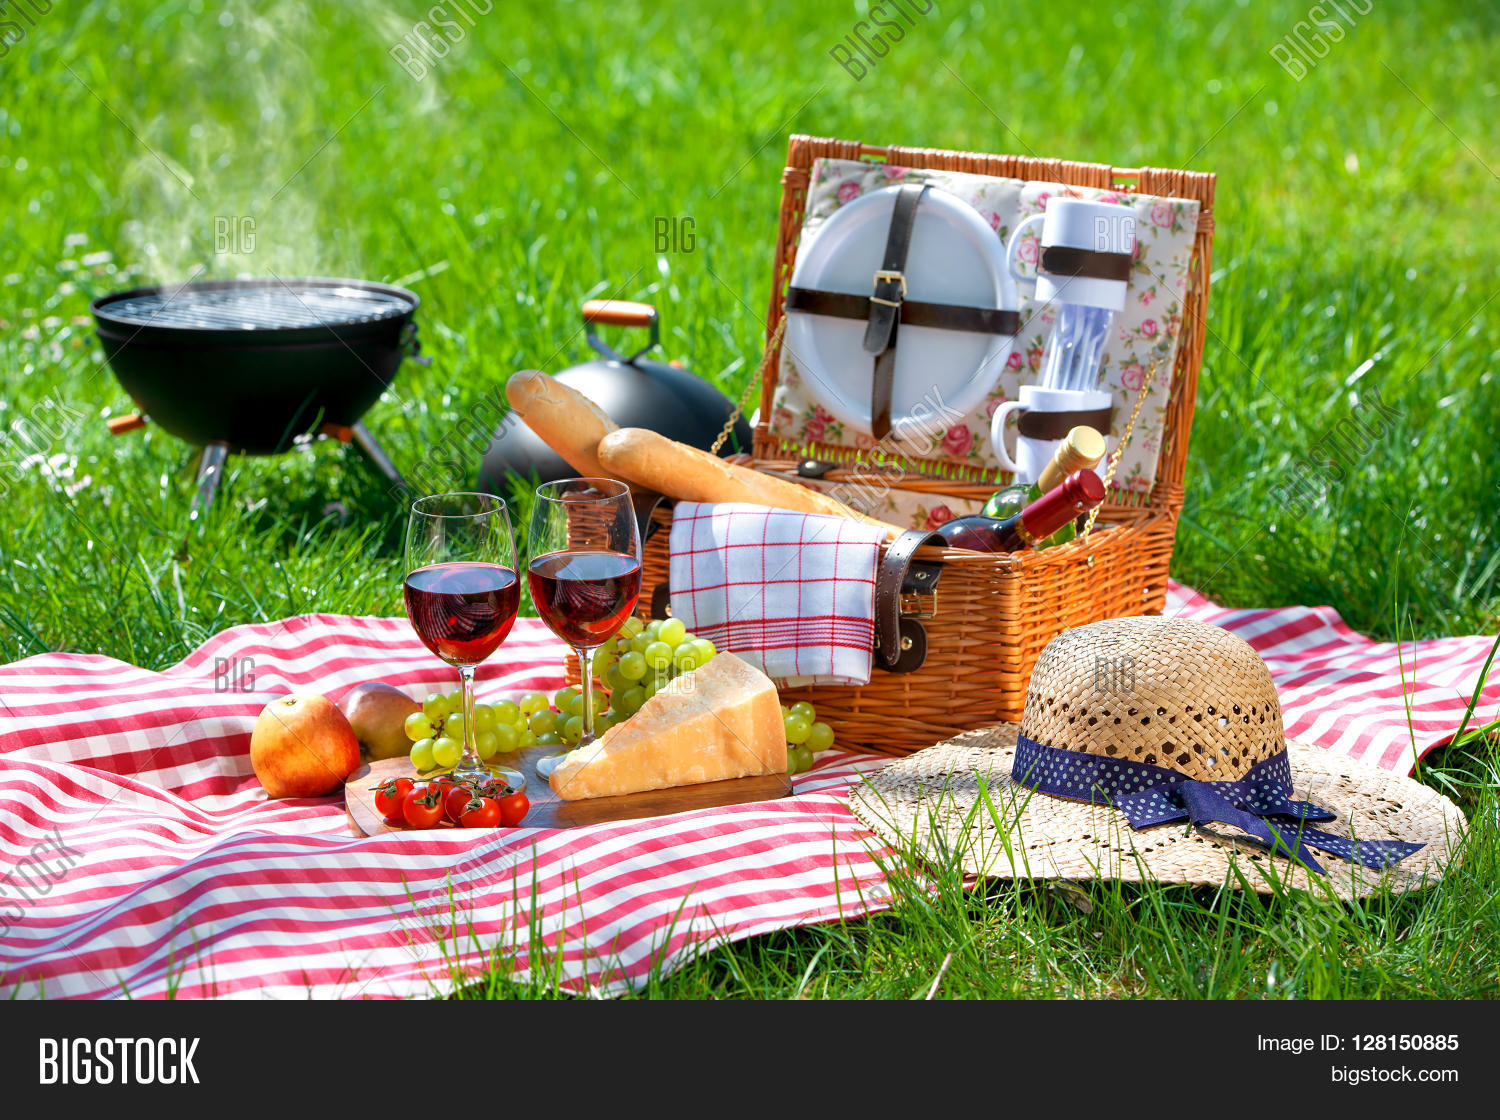 how to pack wine glasses for picnic